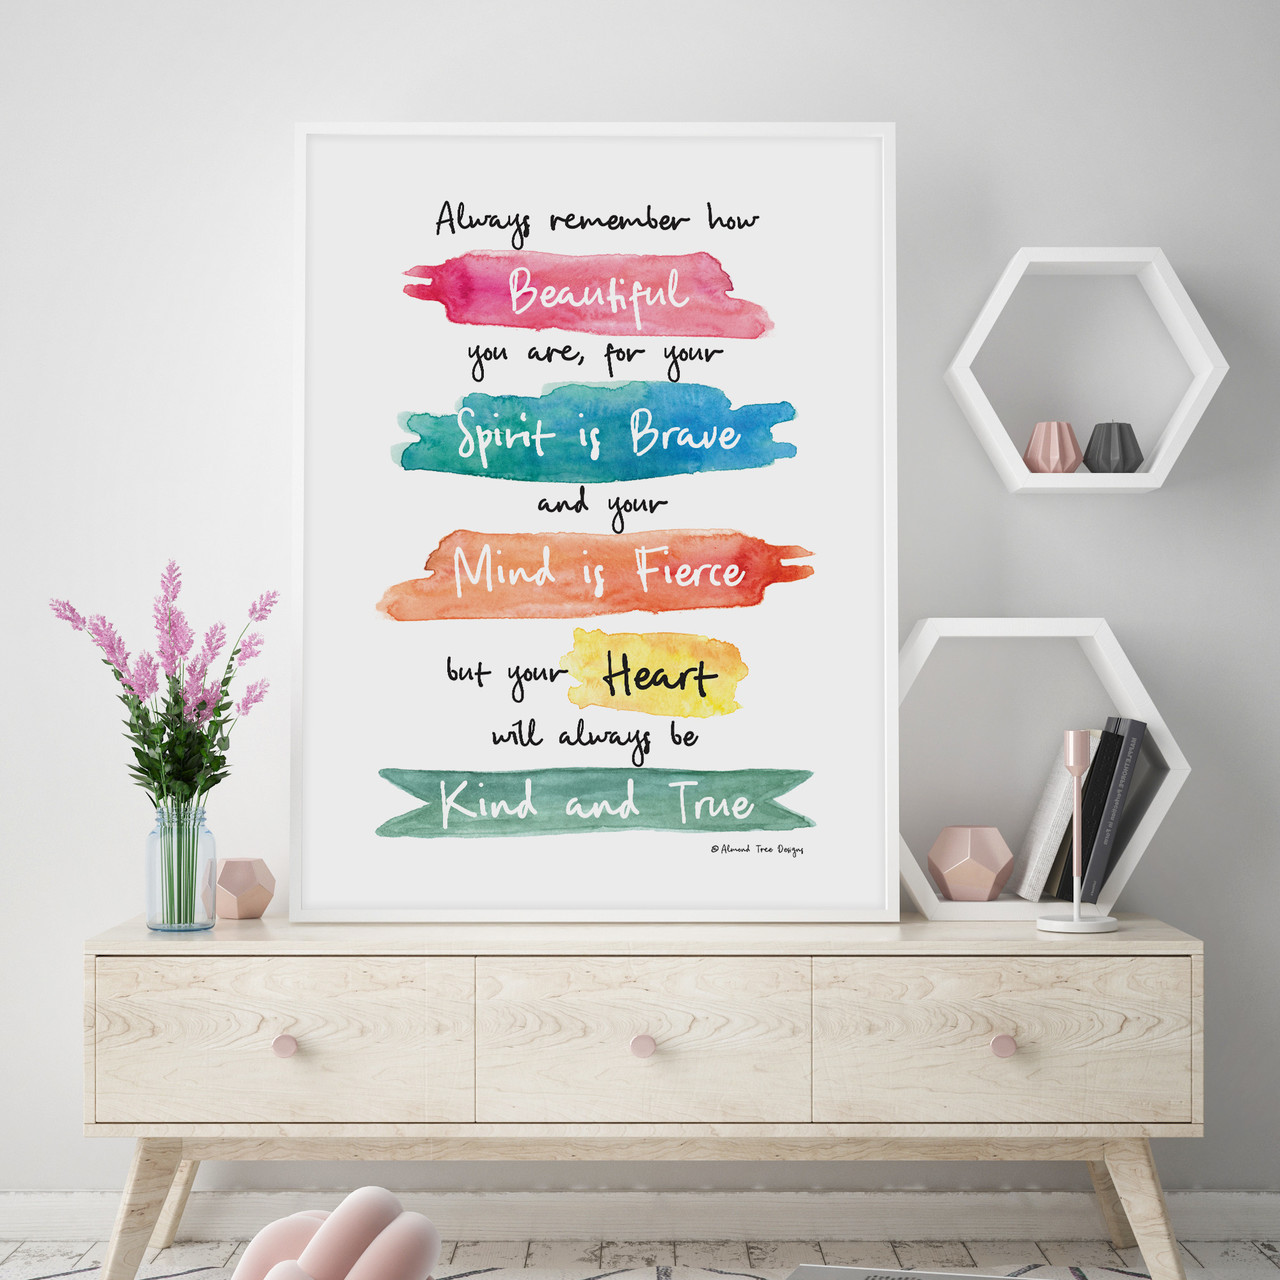 You Are Beautiful Brave And Fierce Wall Art Print In Rainbow With Optional Australian